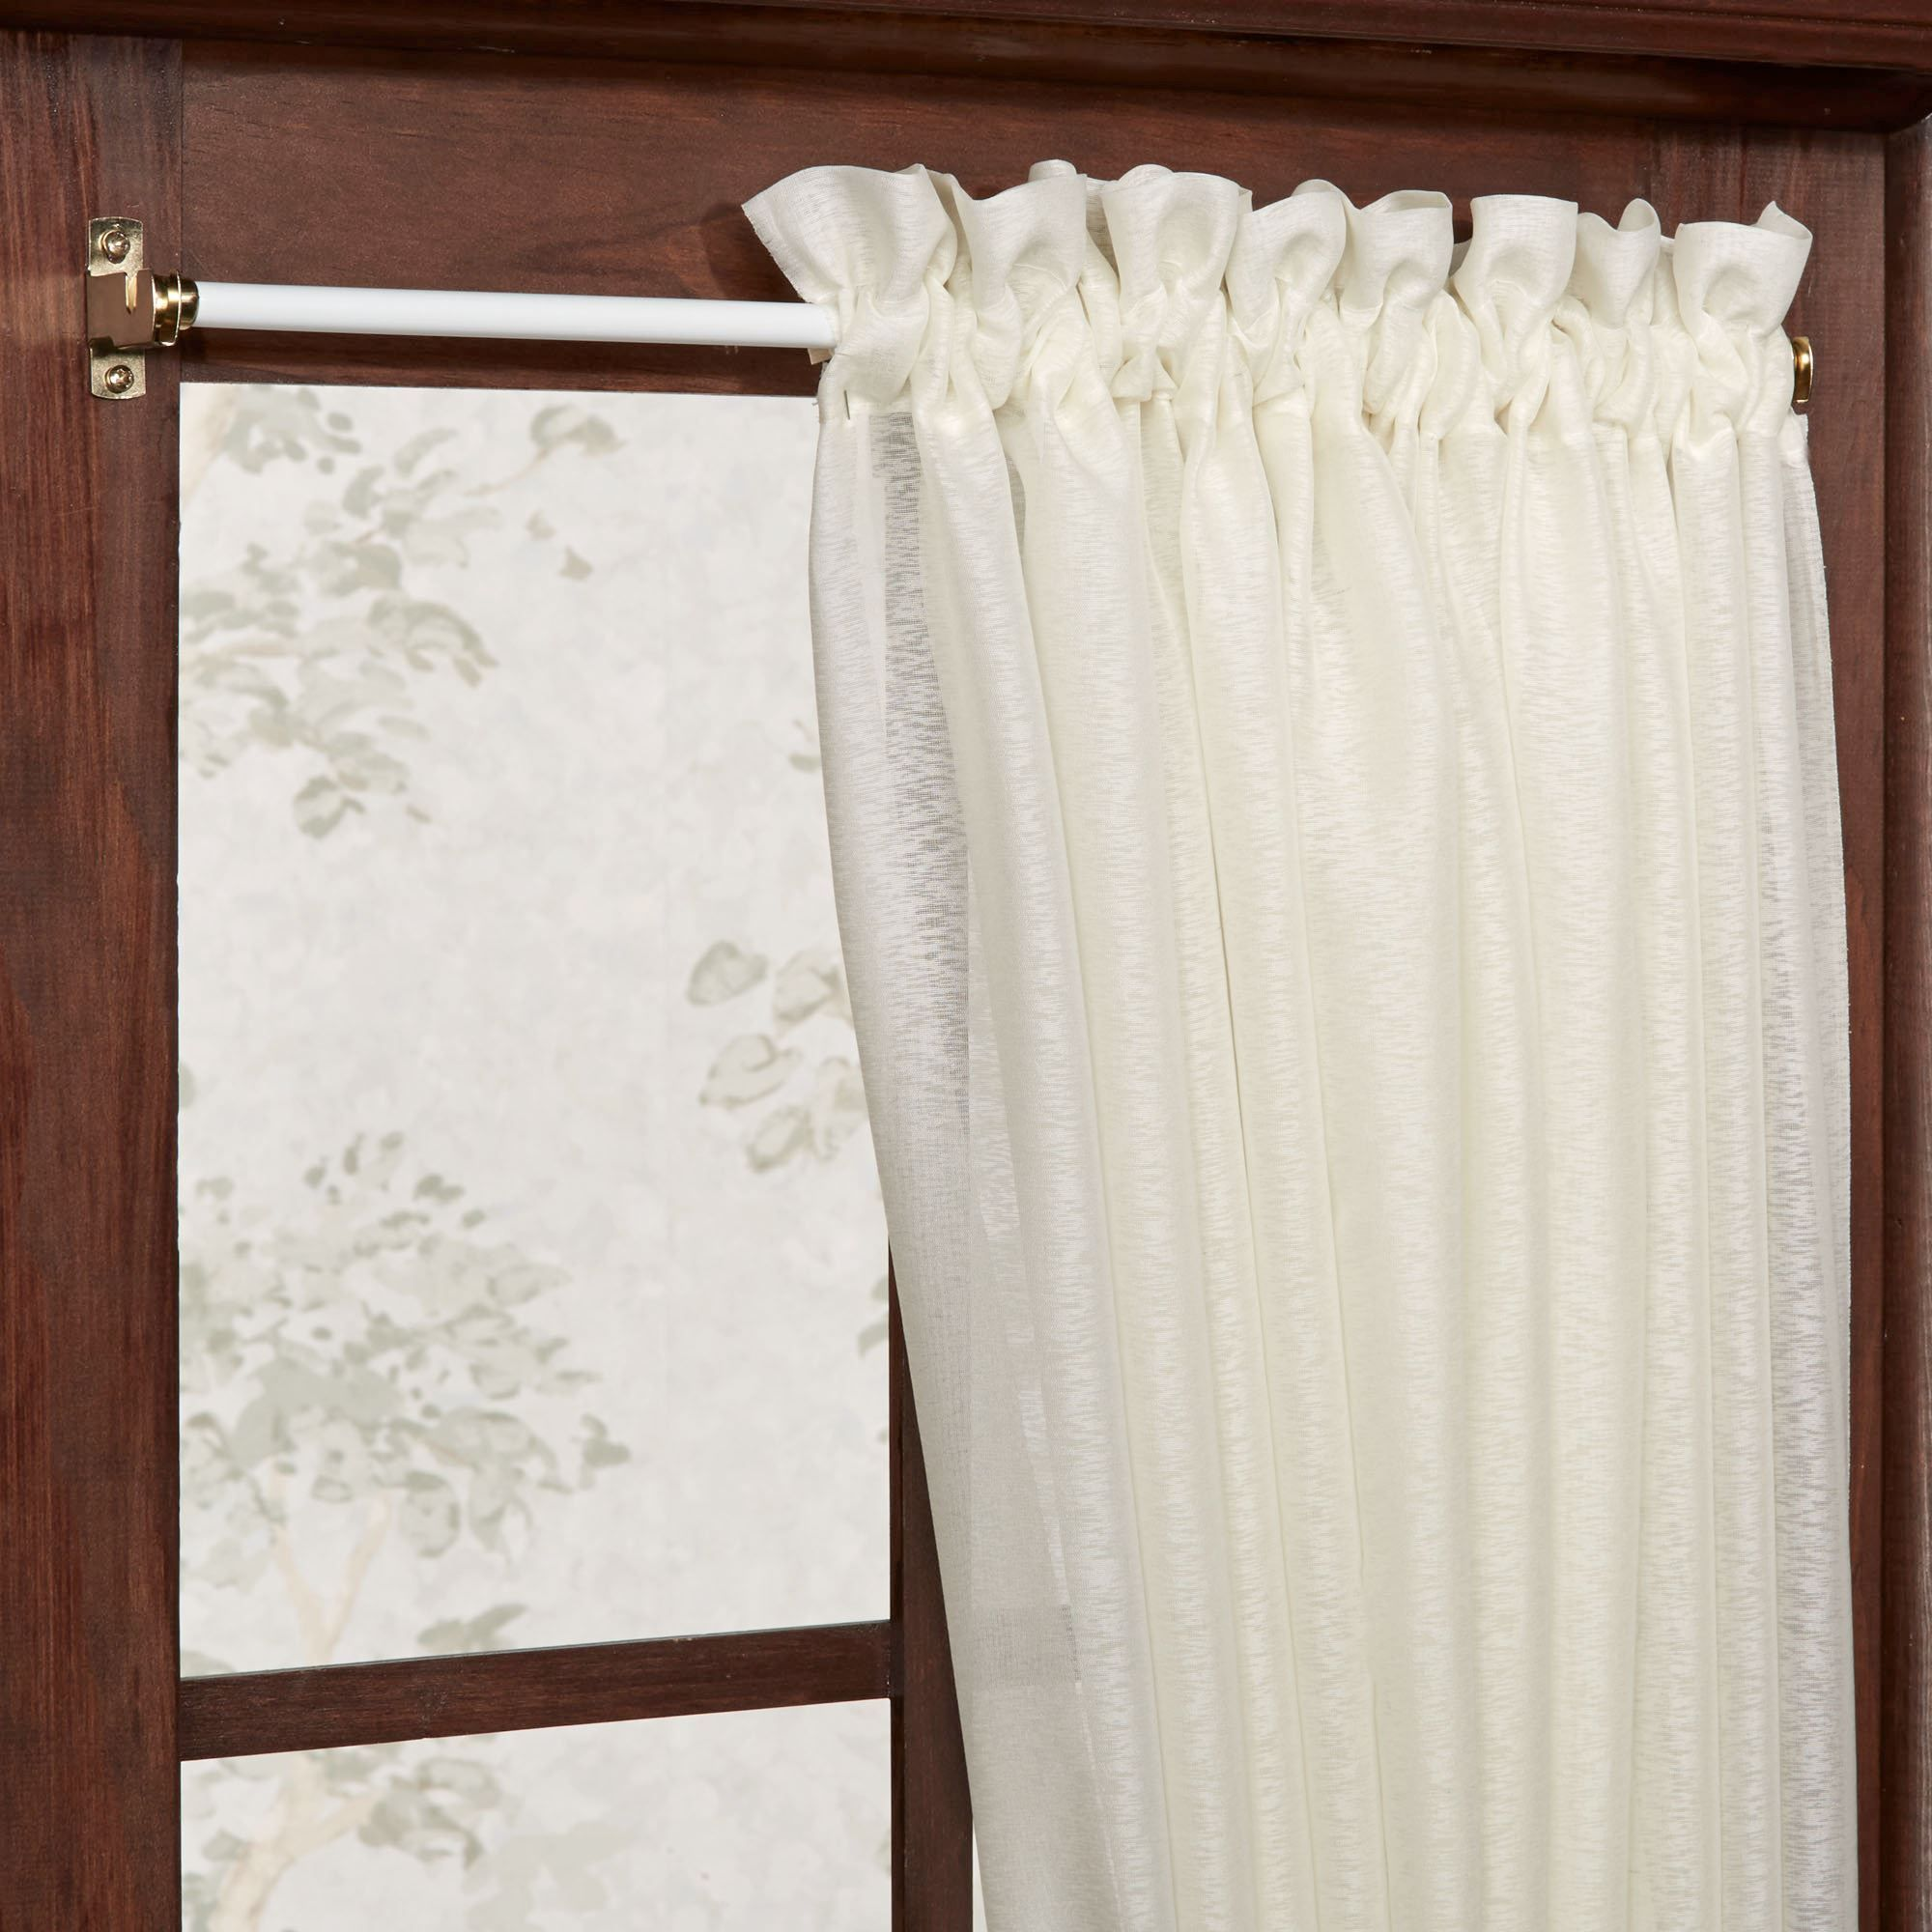 Expandable Wide Sash Curtain Rod Curtains Inside Window Frame